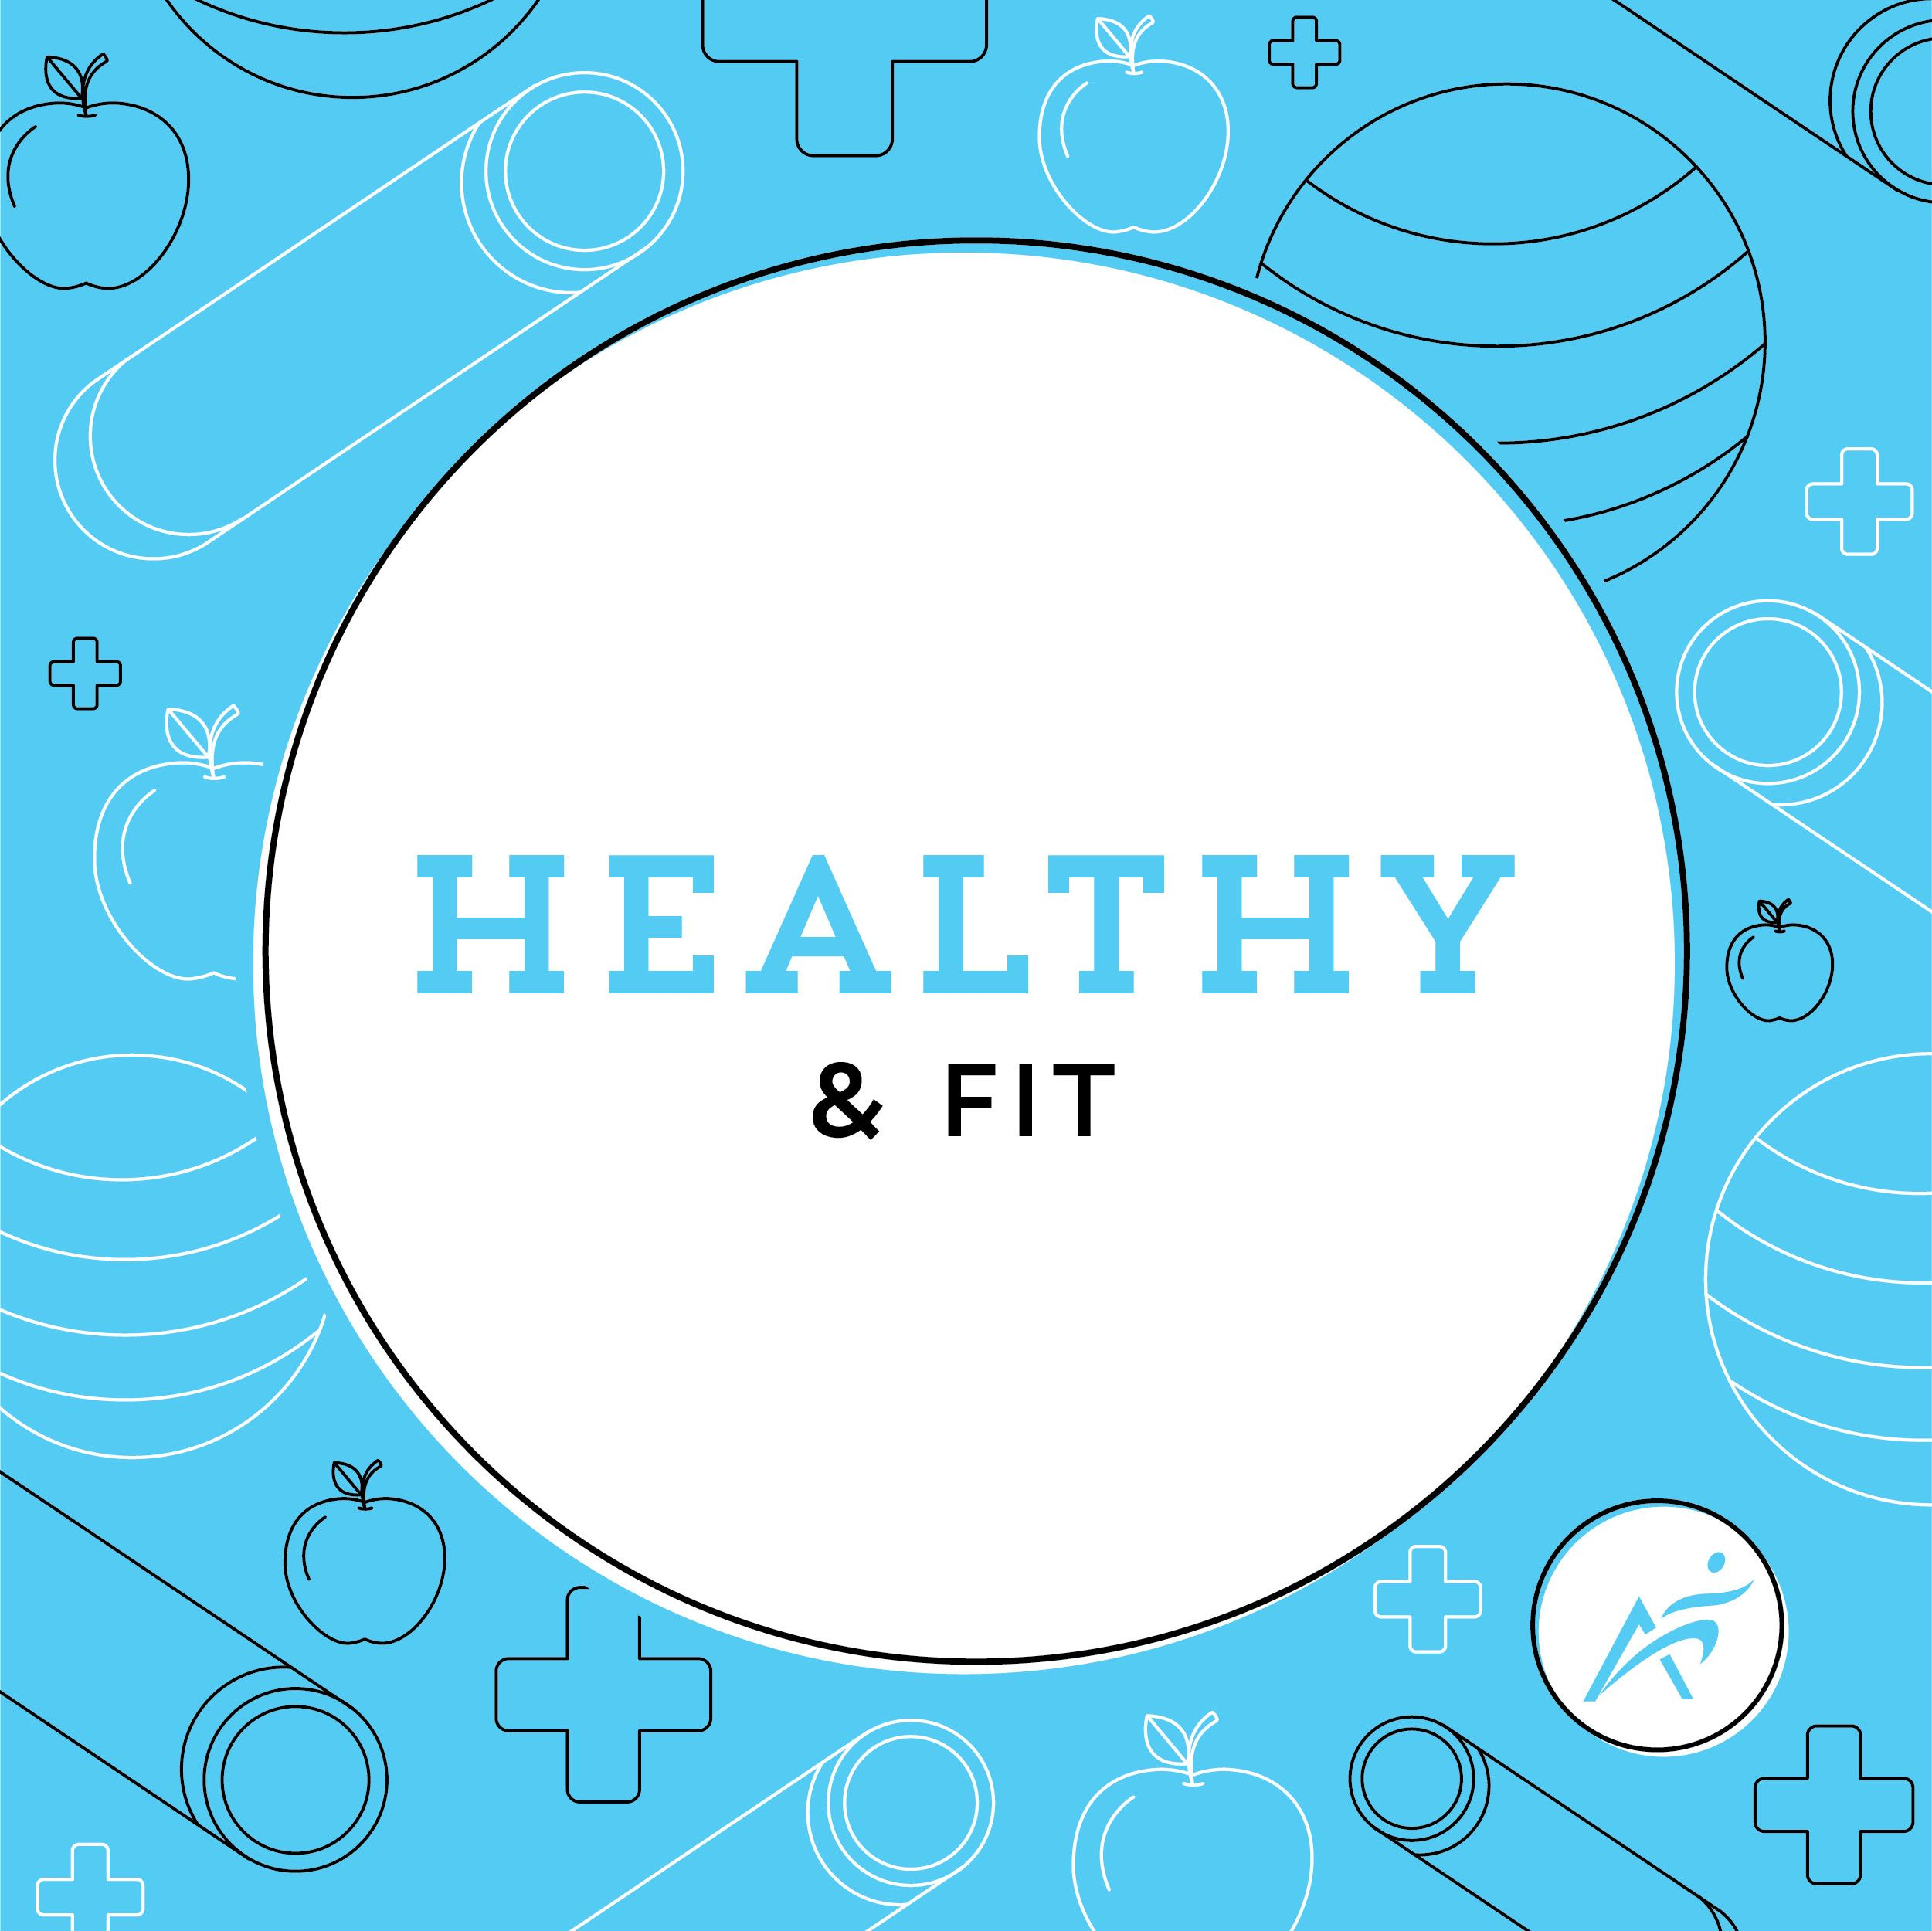 Good health and physical fitness go hand in hand. Here we